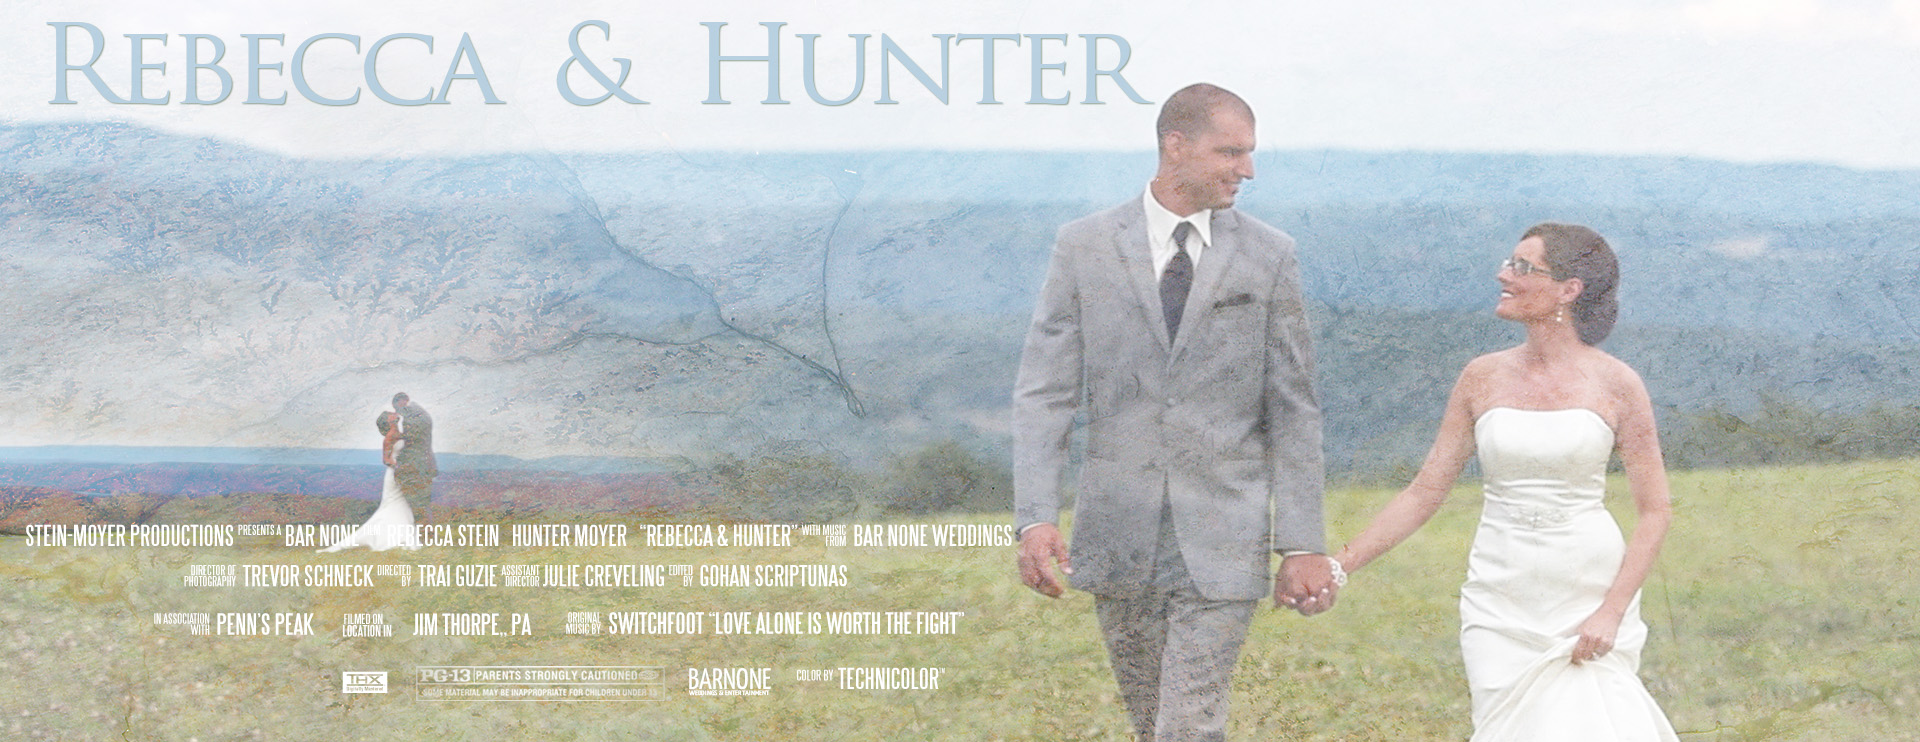 Penn's Peak Wedding Highlight Film - Movie Poster - Rebecca & Hunter